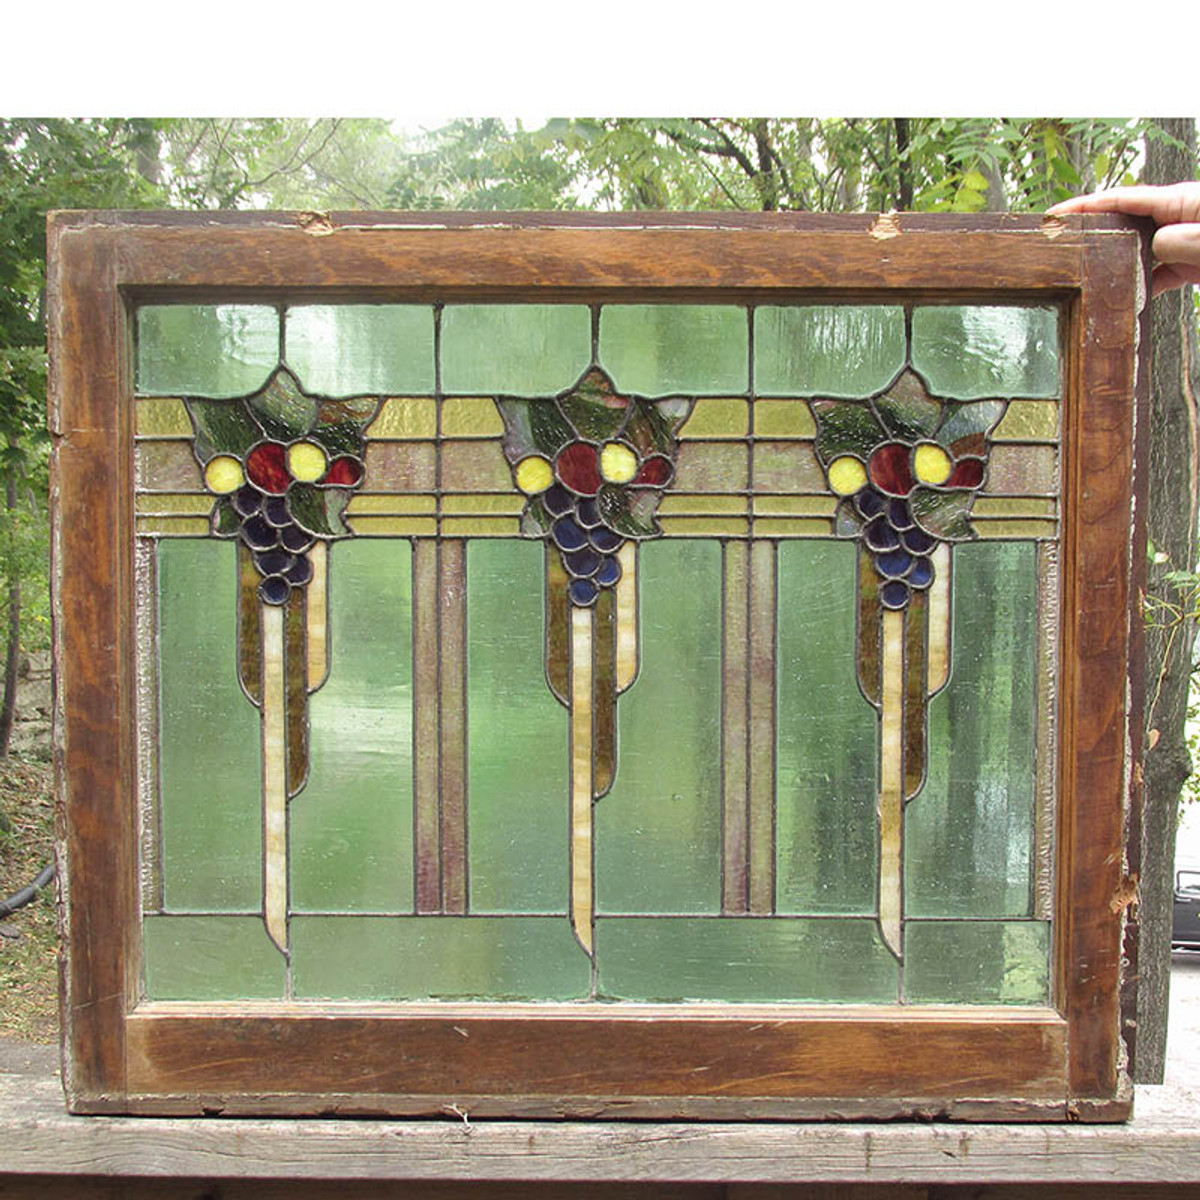 G15051 - Antique Arts & Crafts Stained Glass Window